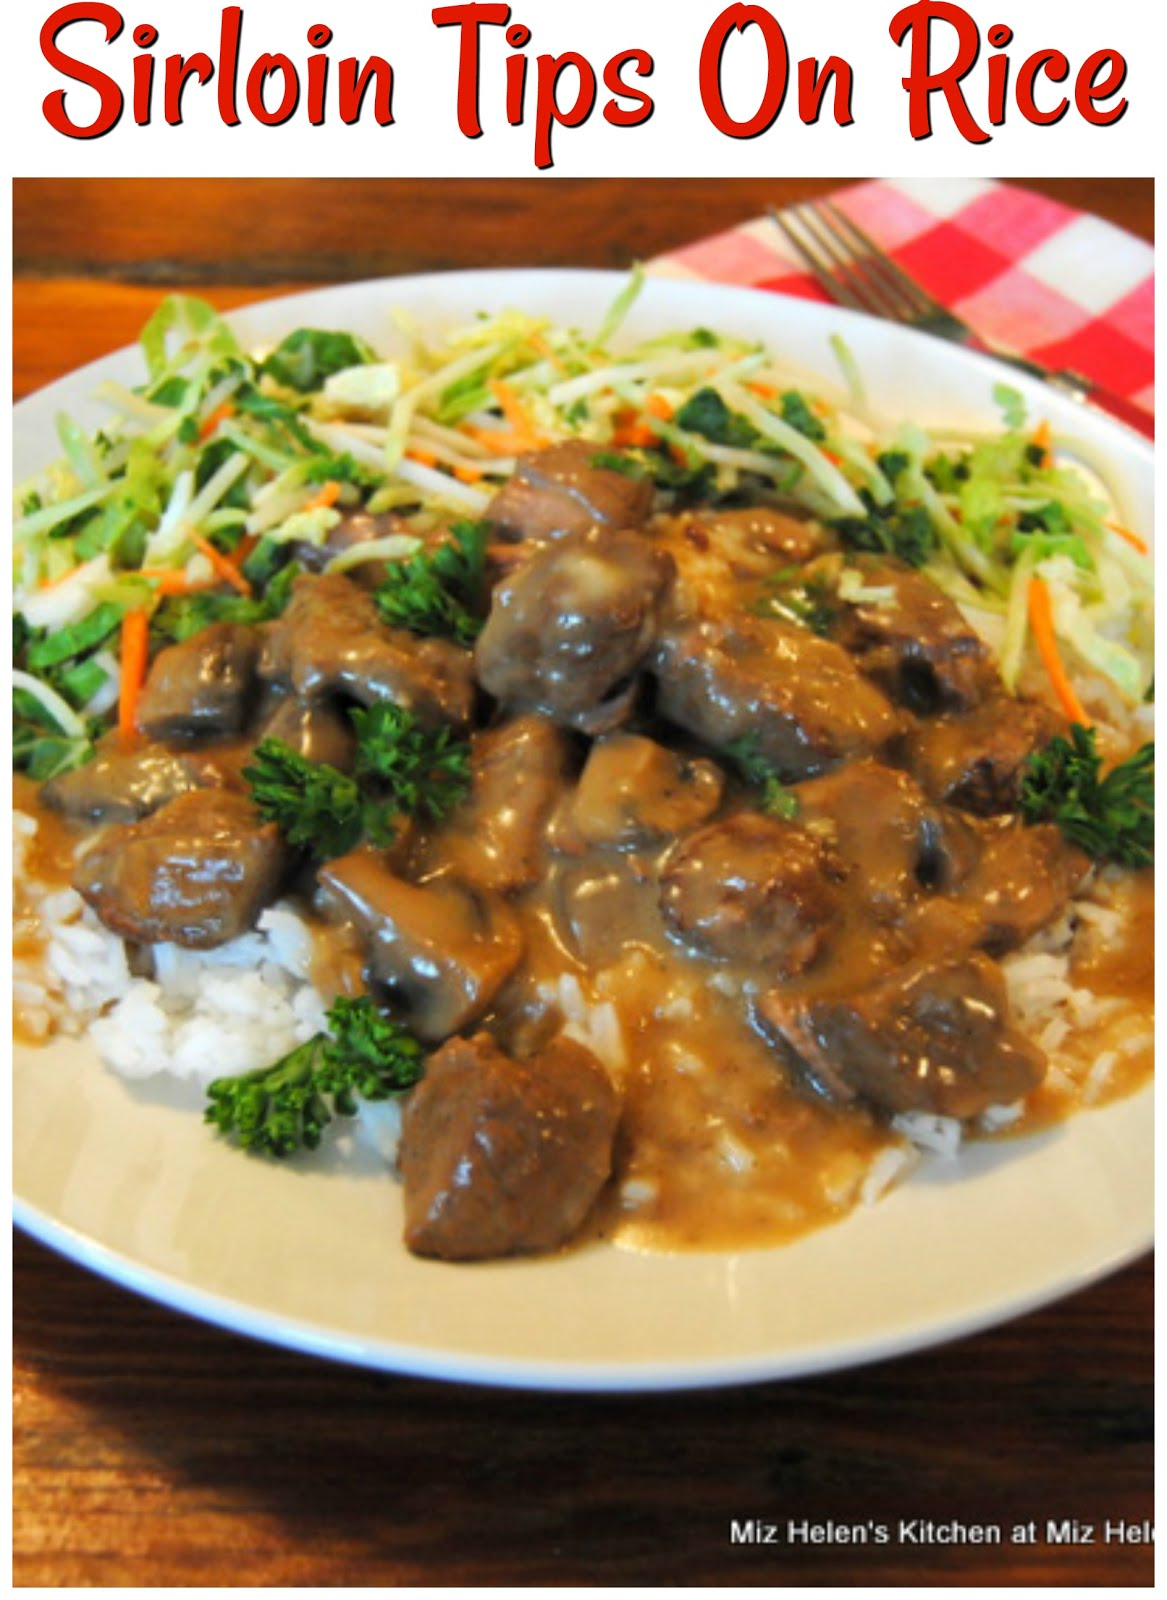 Sirloin Tips On Rice